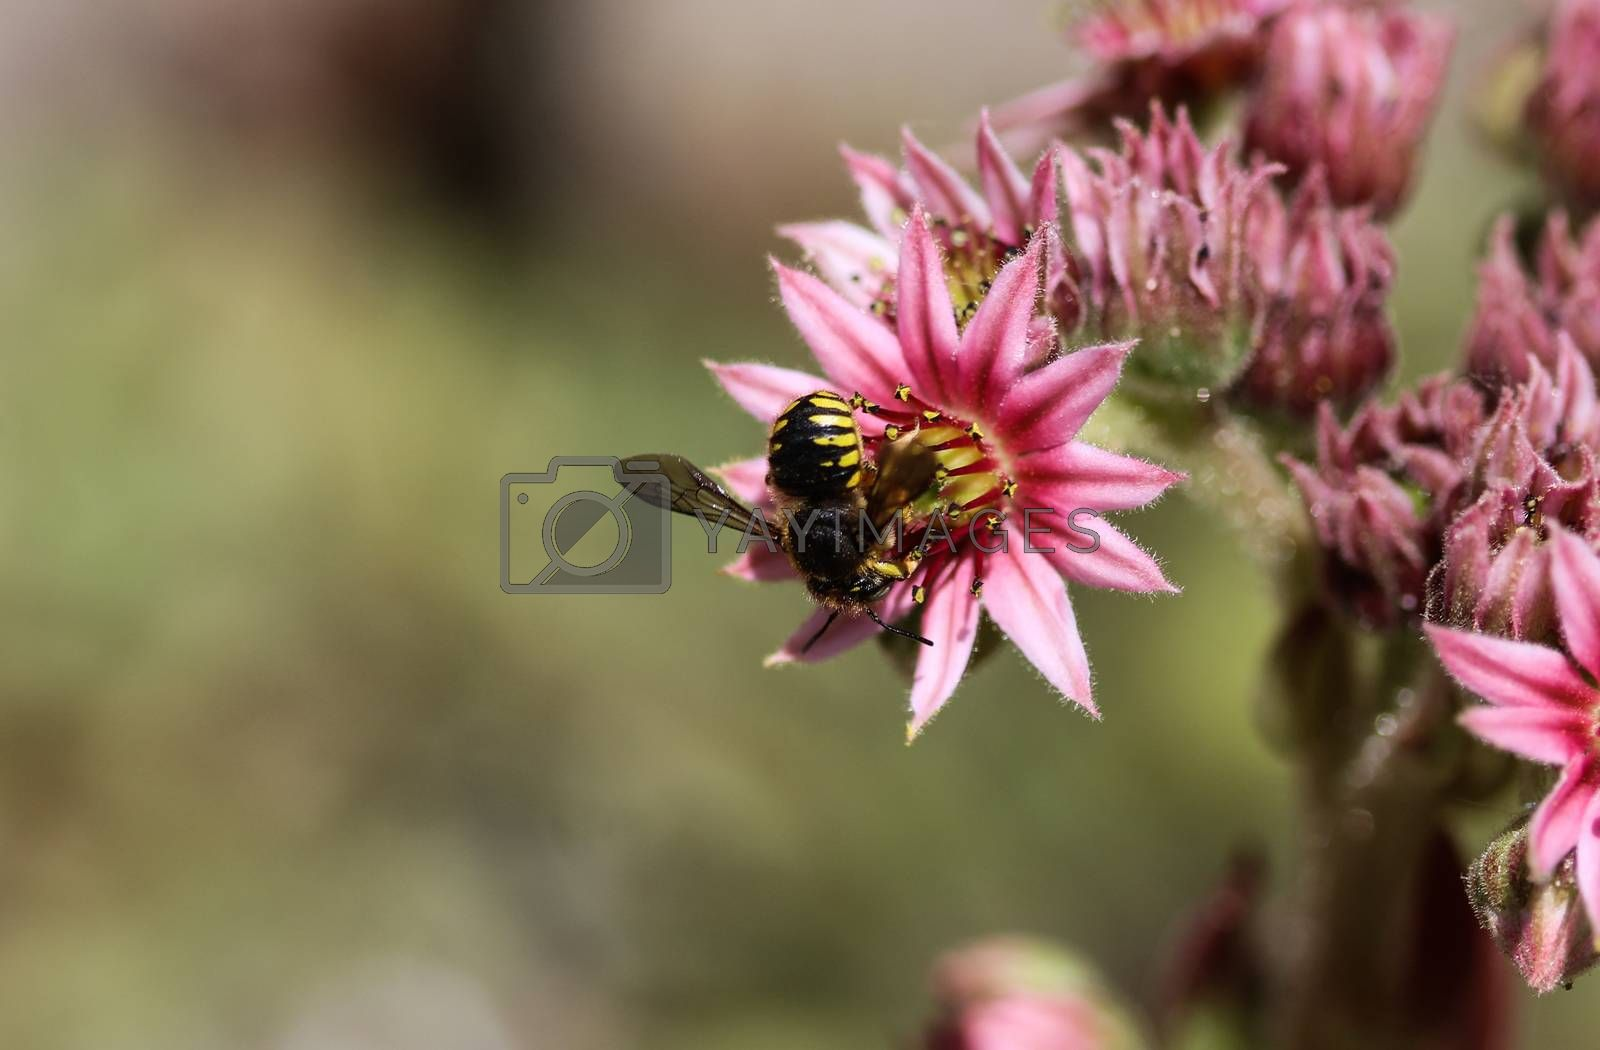 Royalty free image of Anthidium manicatum, commonly called the European wool carder bee by michaelmeijer